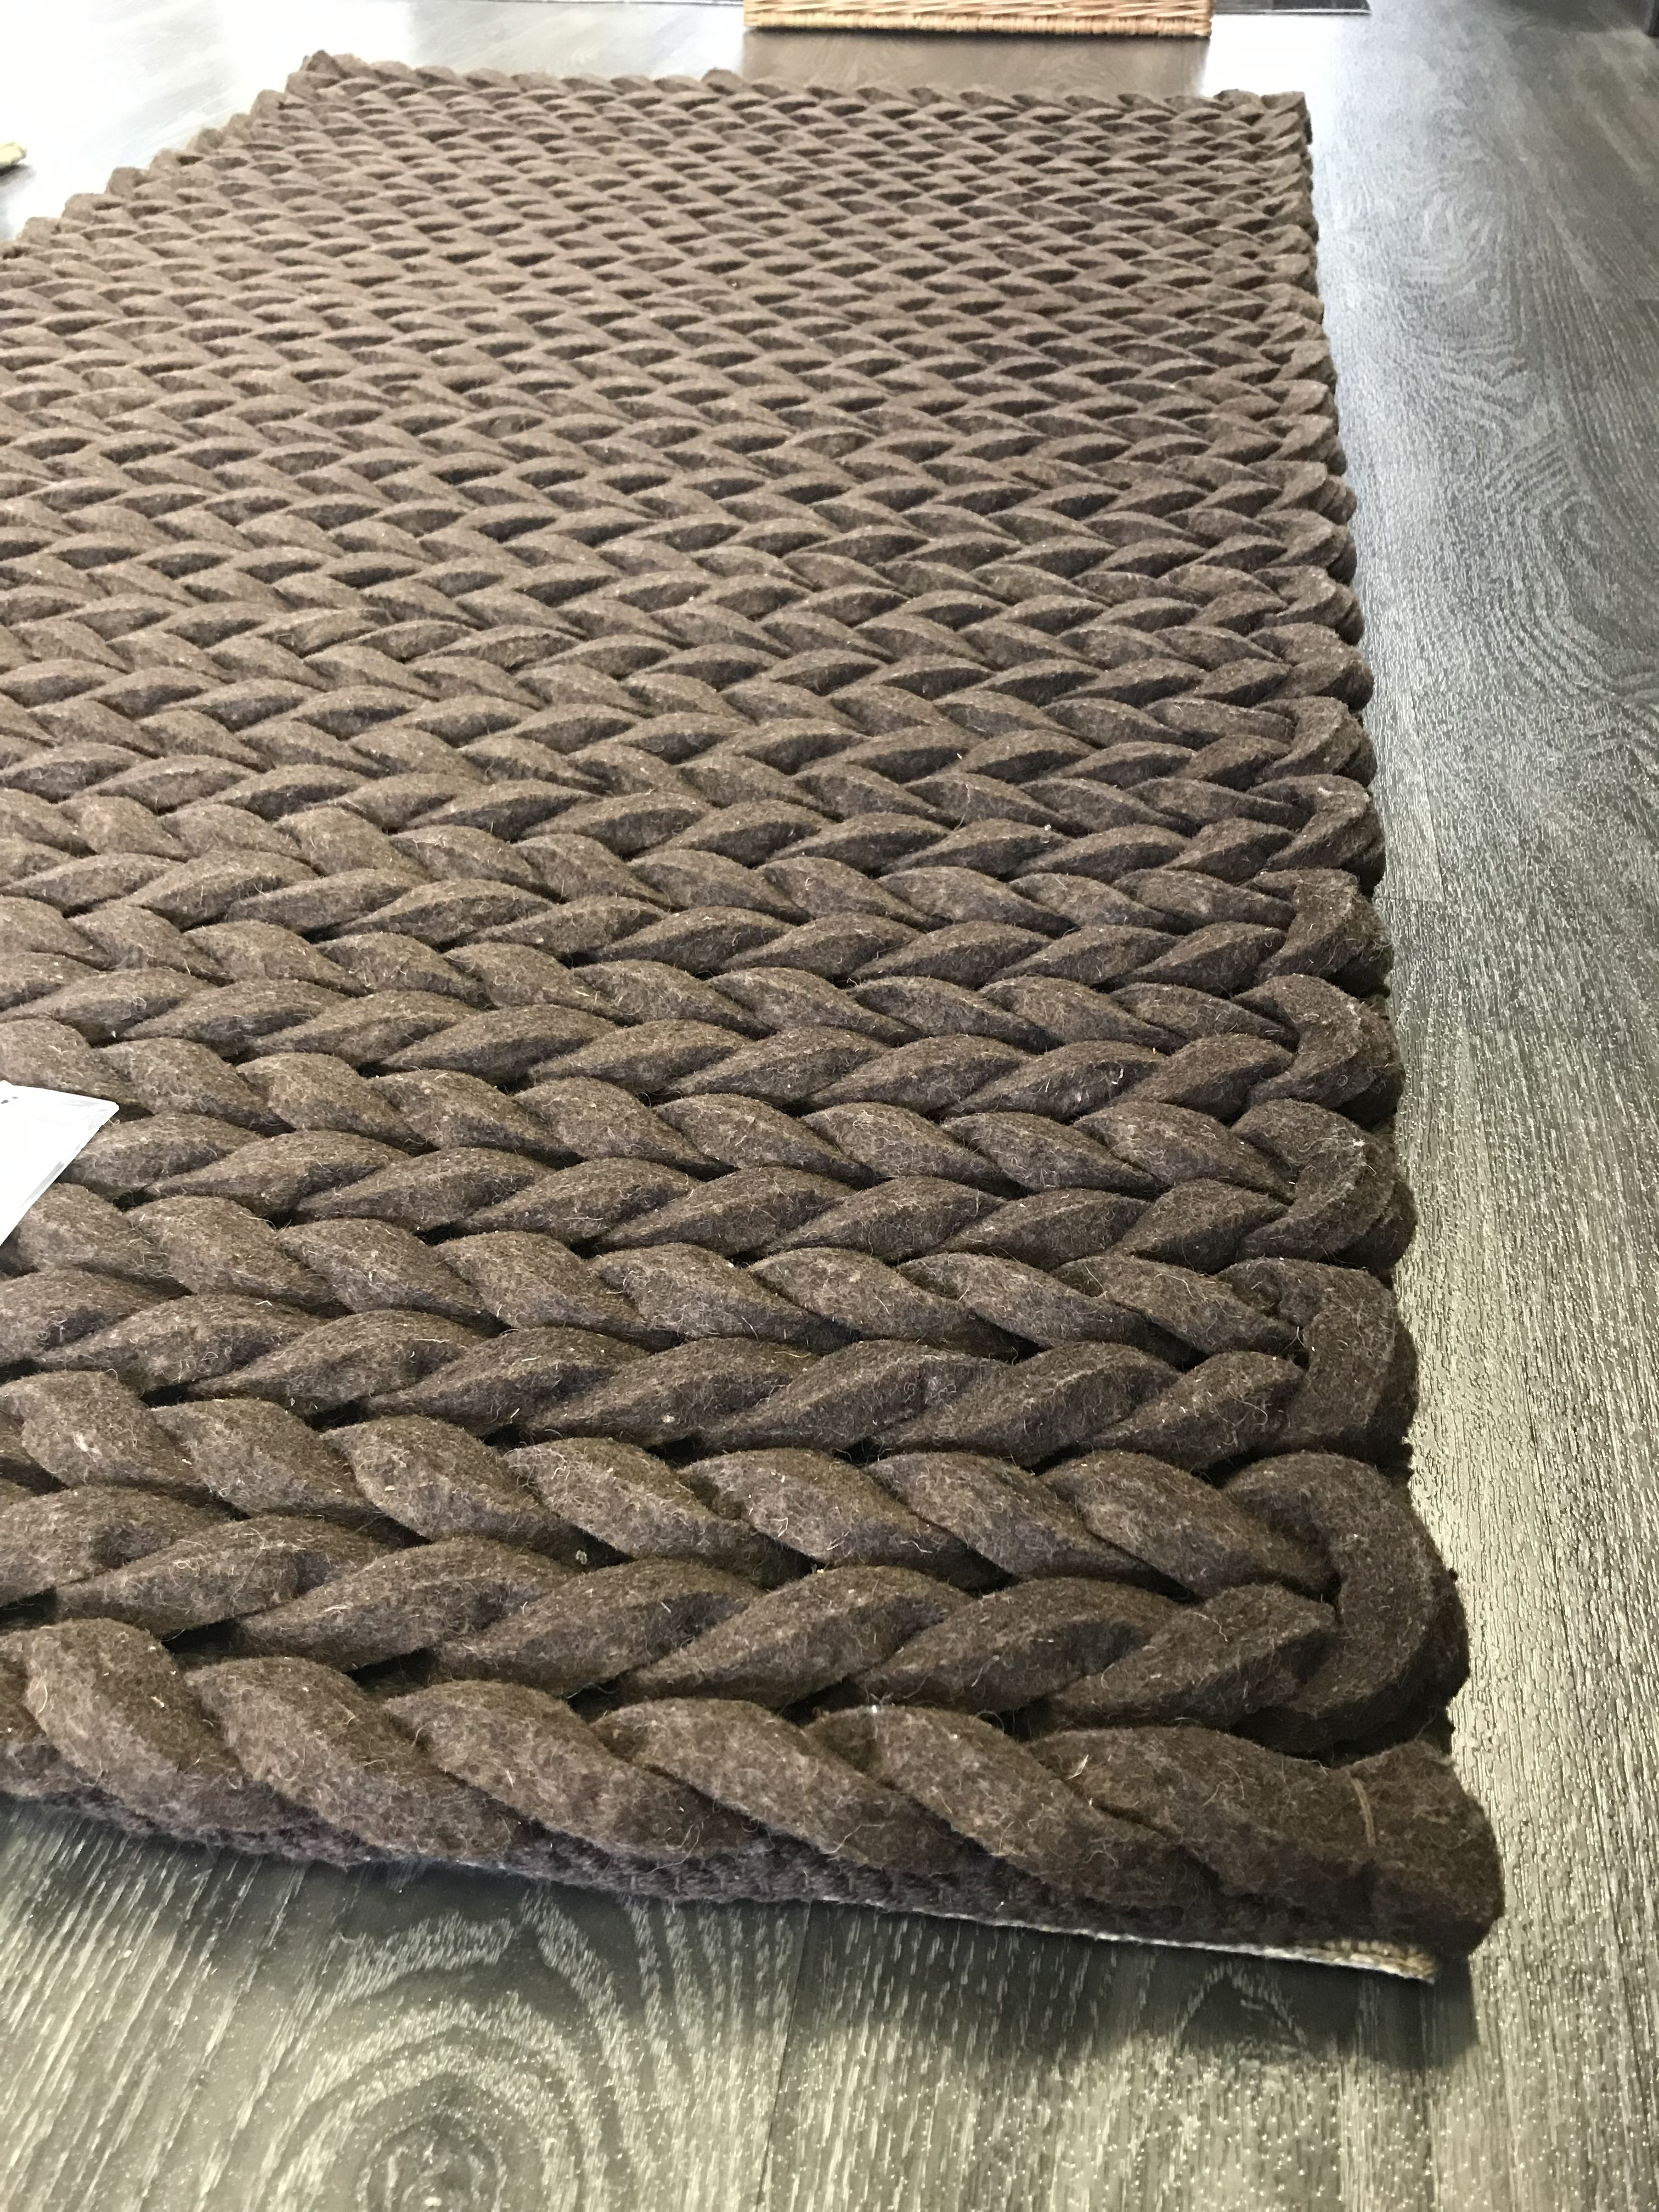 Arm knit your own chunky wool throw, or use XXL needles to